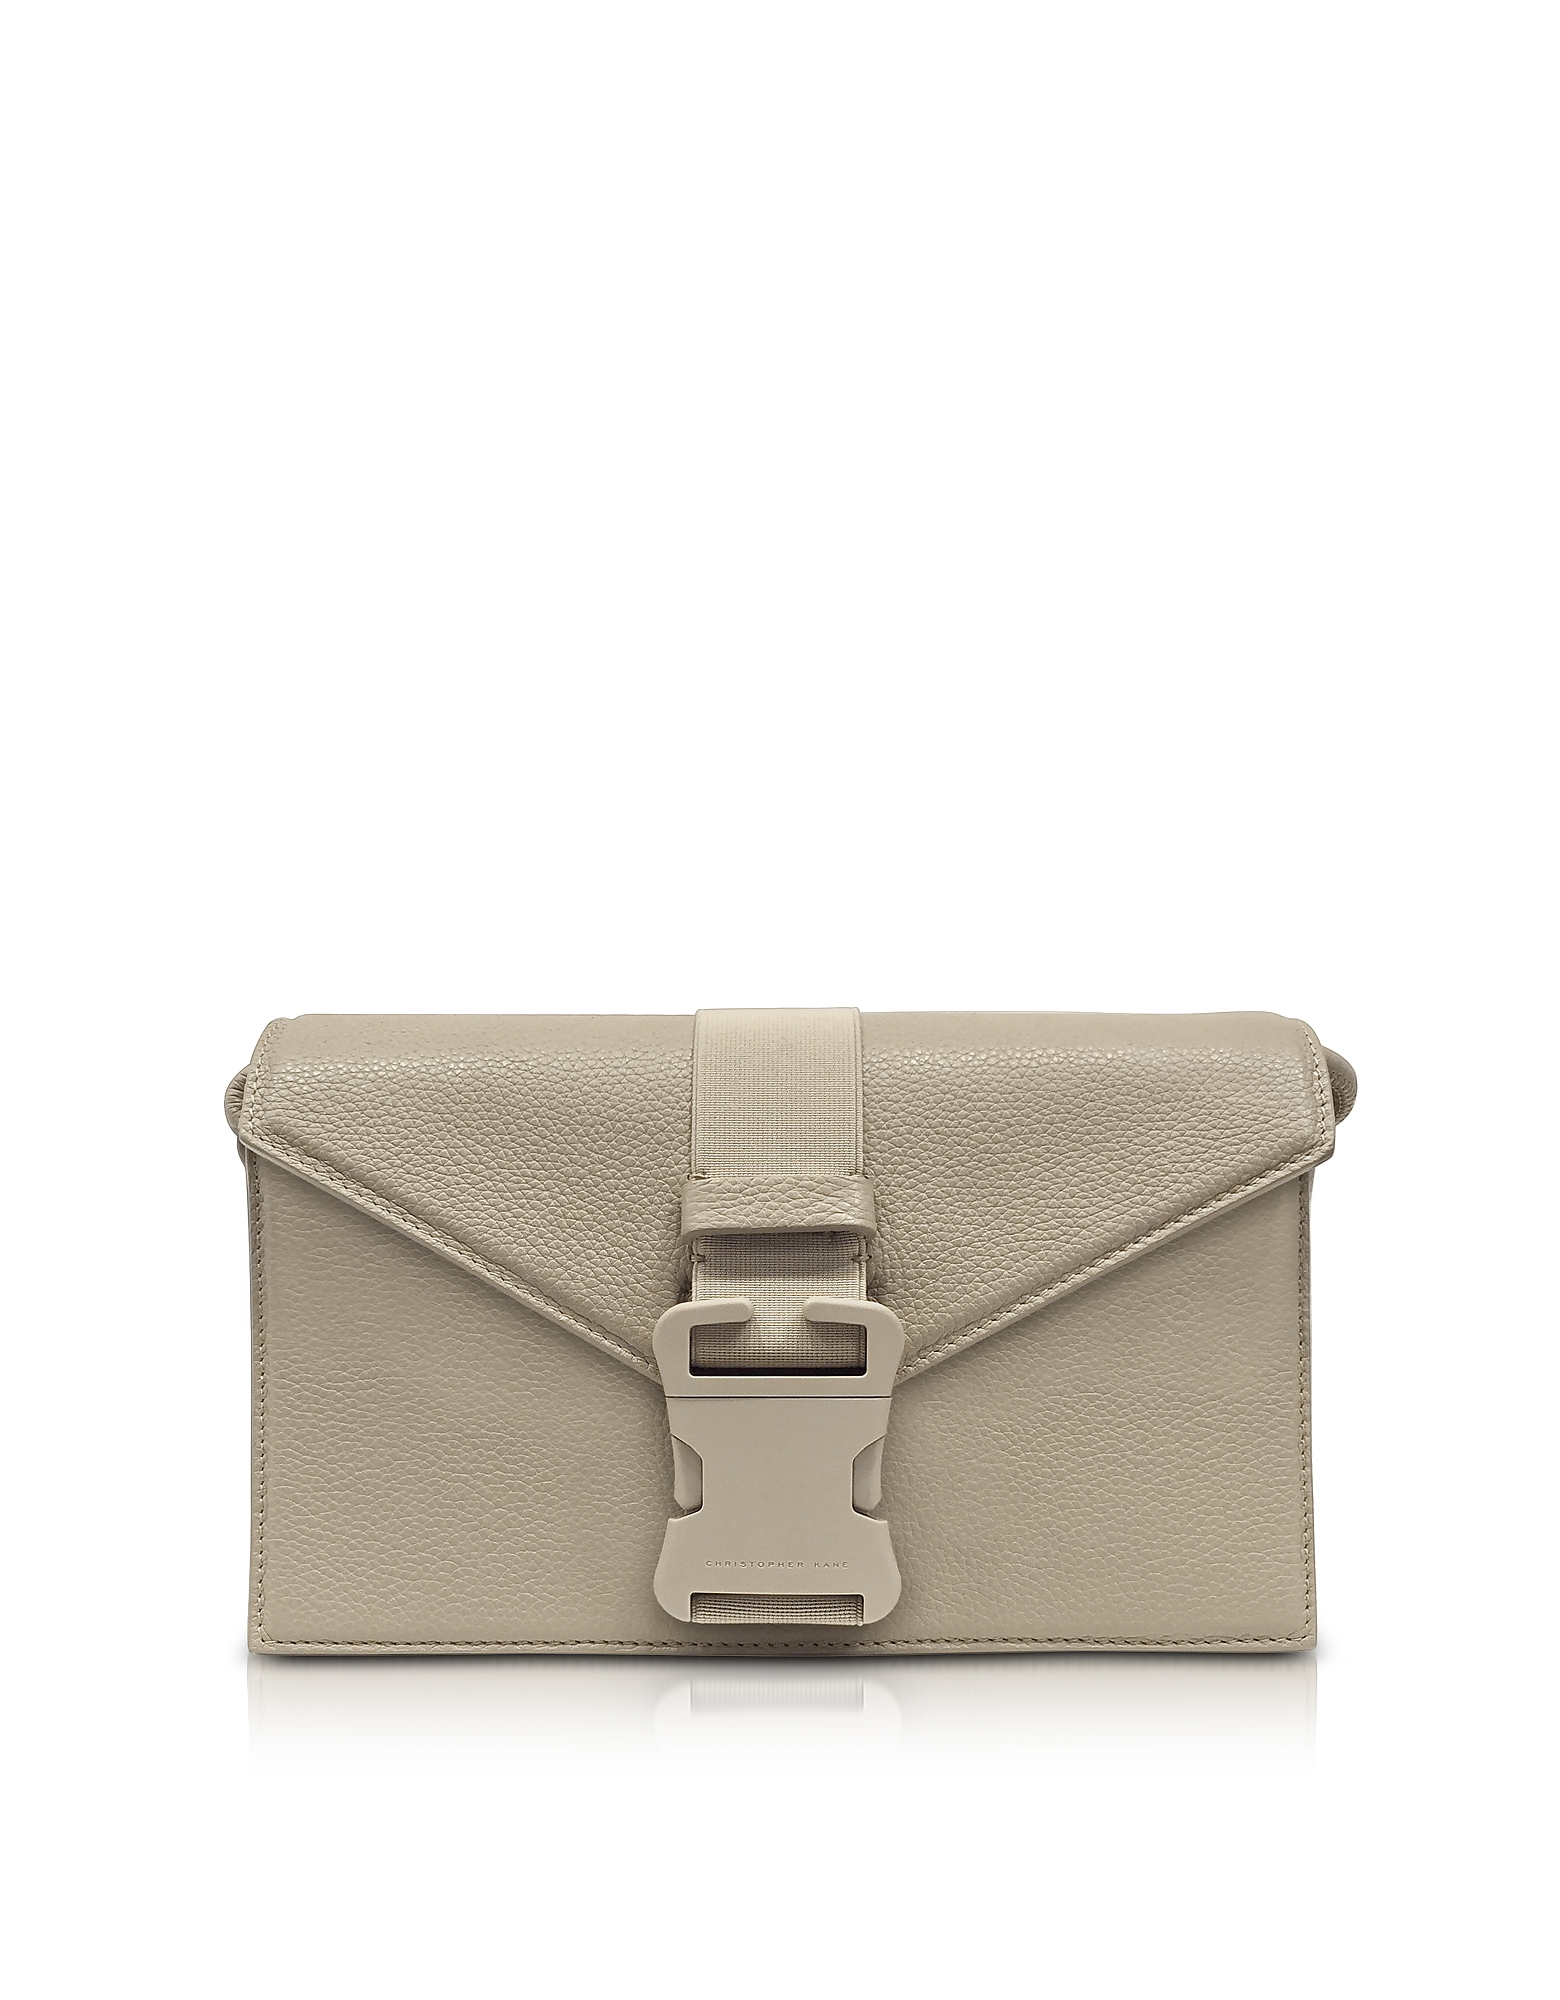 Devine Og Pitch Bag Borsa con Tracolla in Pelle Moon Dust